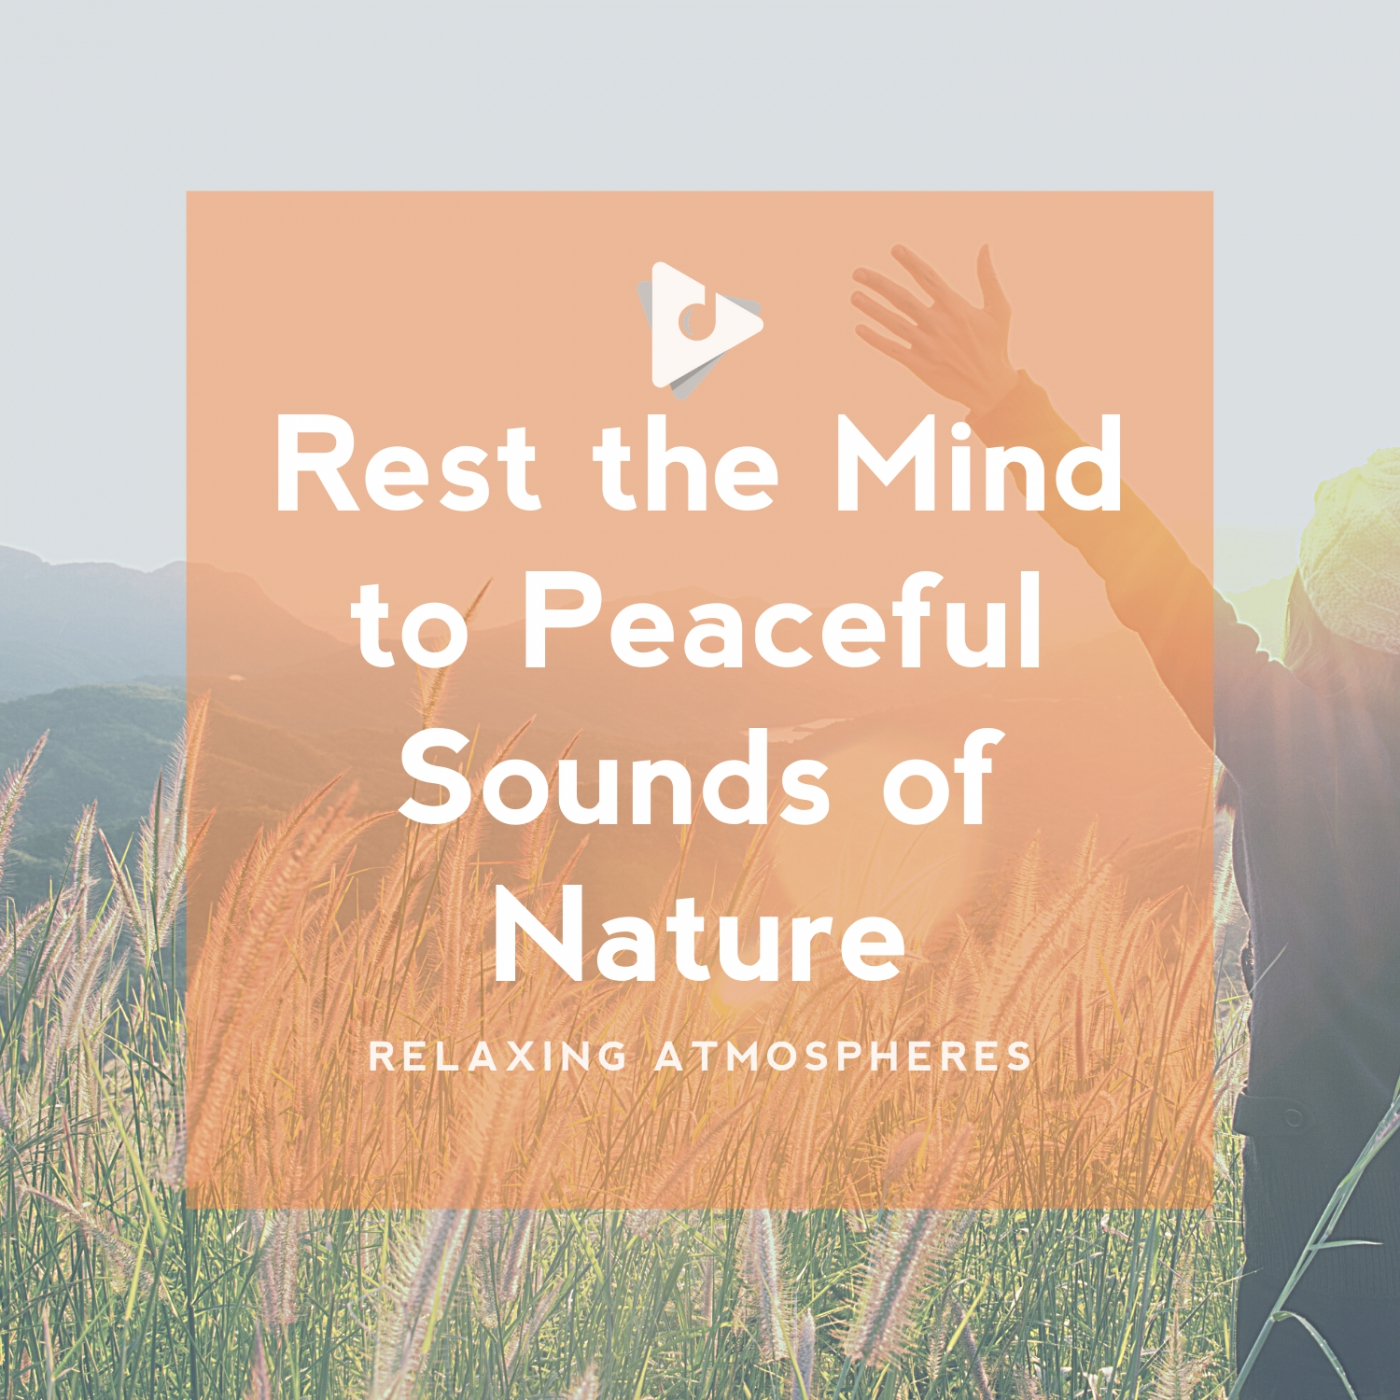 Rest the Mind to Peaceful Sounds of Nature